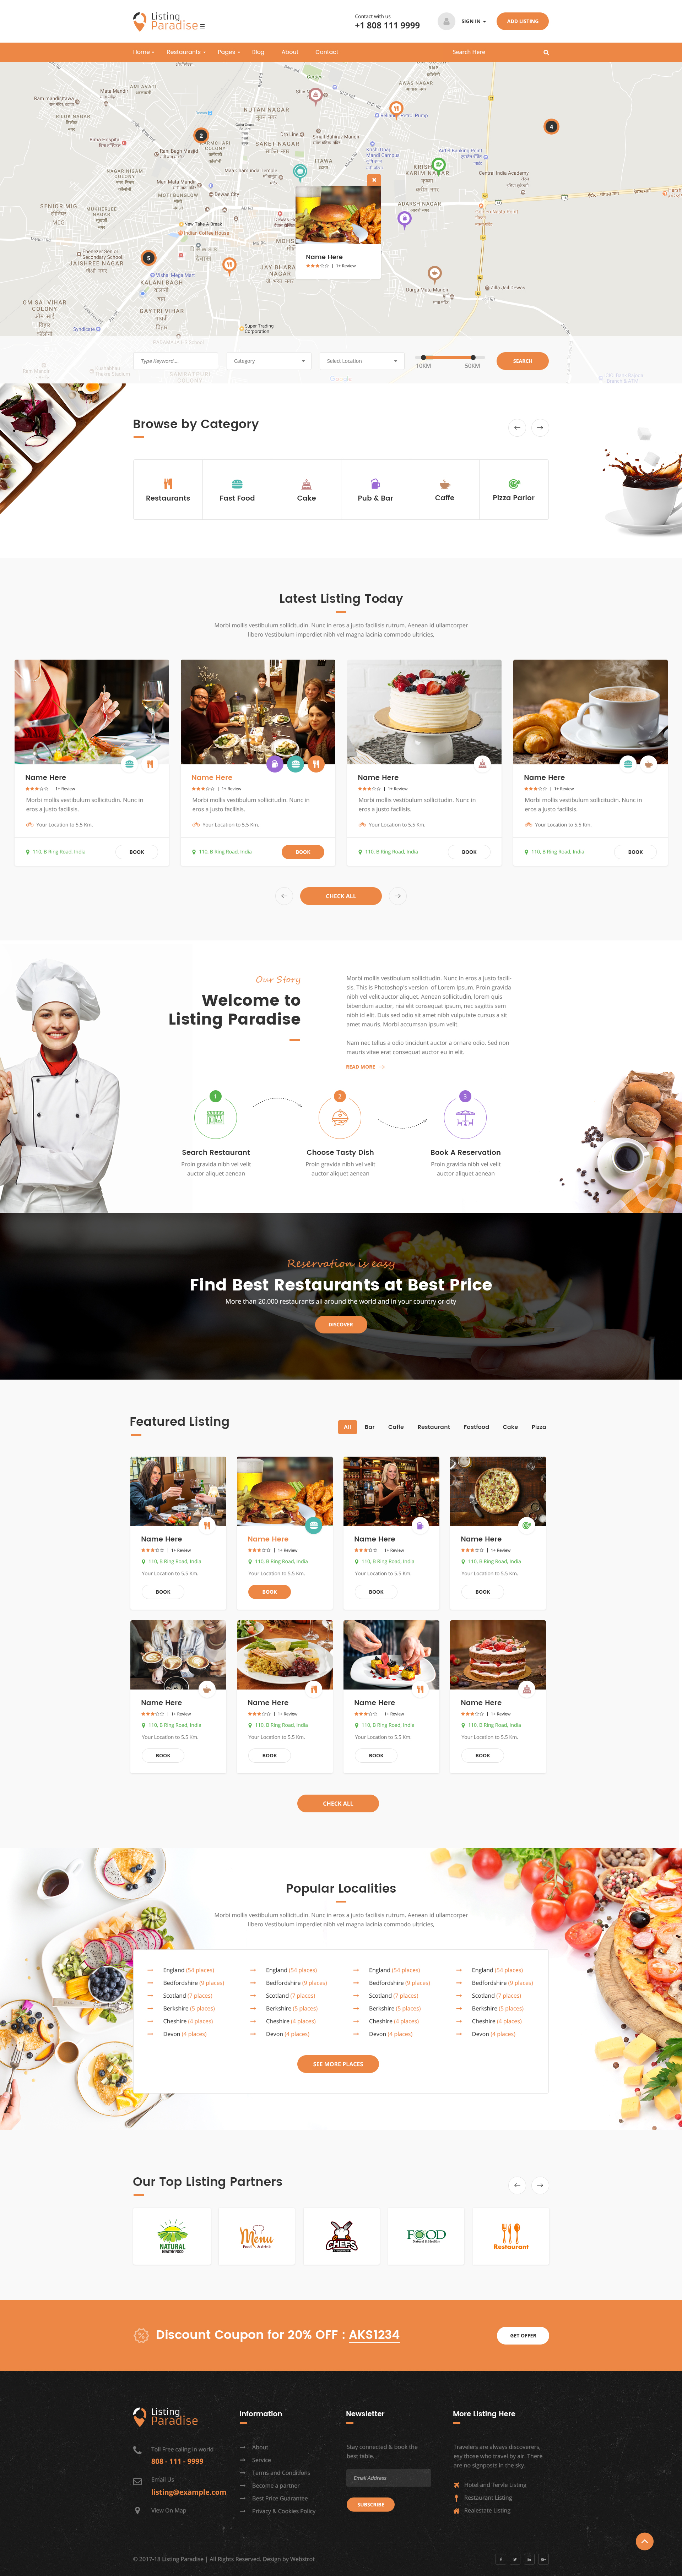 Listing Paradise Directory Listing PSD Template by webstrot         Preview 17 Index Restaurant With Map jpg